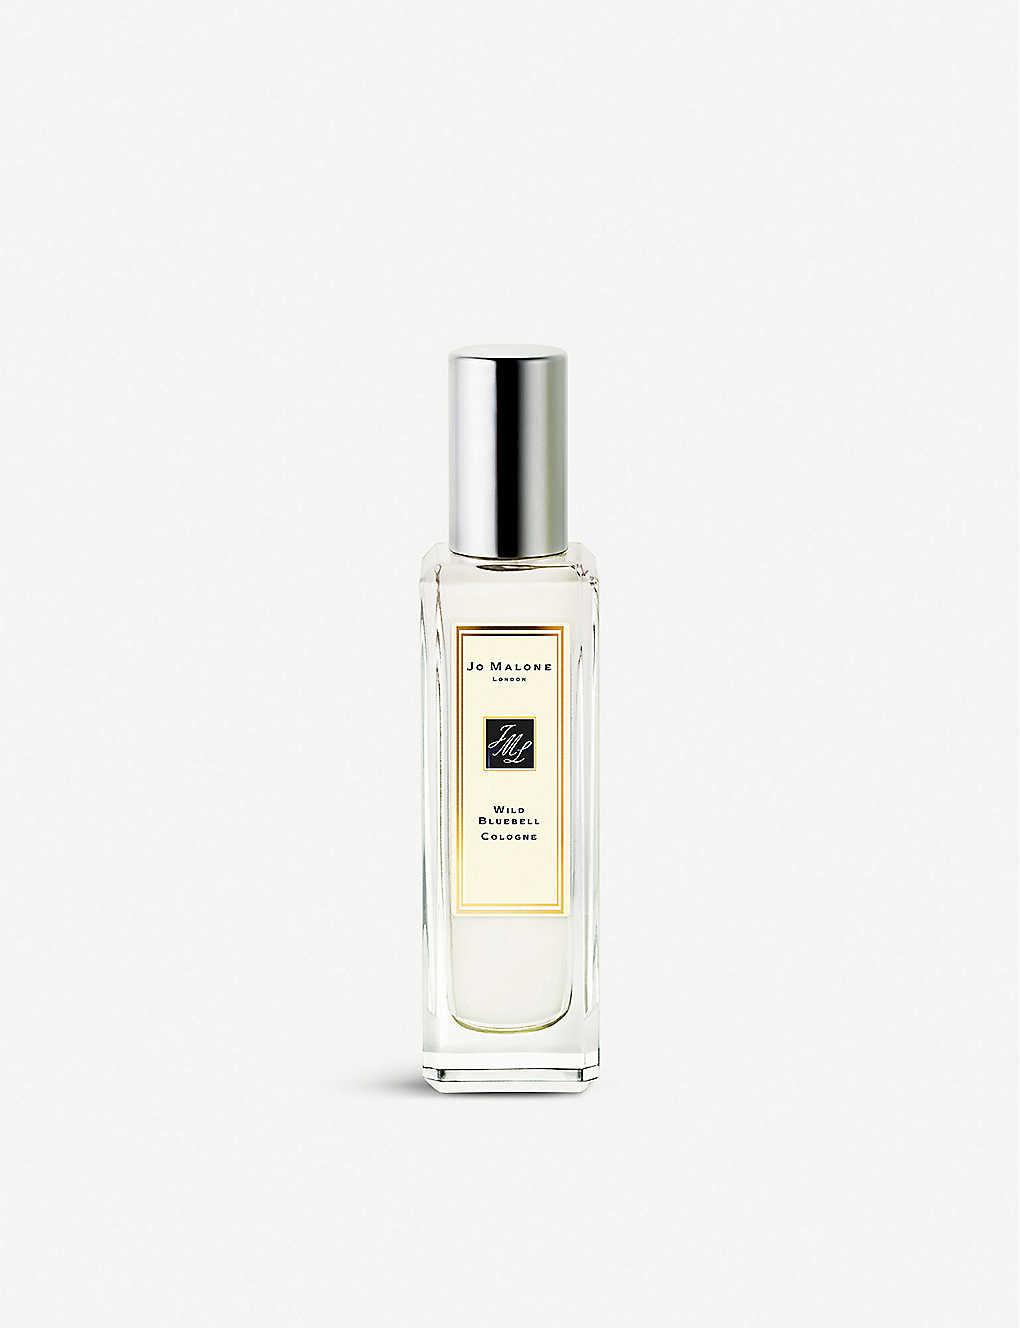 JO MALONE LONDON: Wild Bluebell cologne 30ml